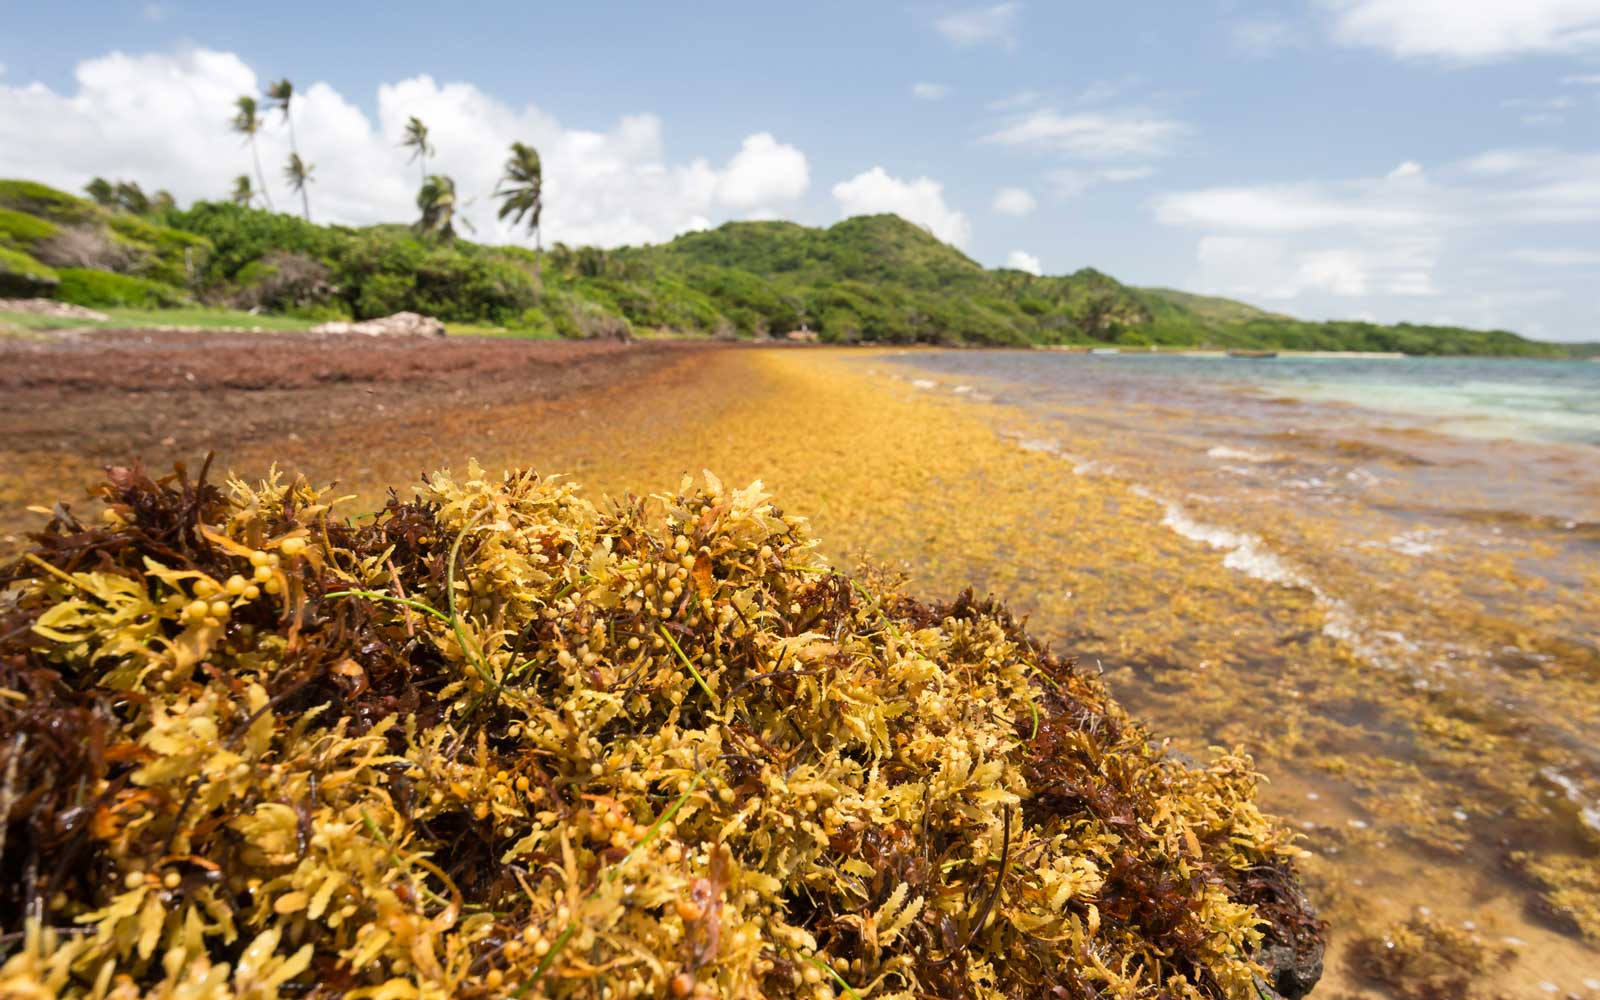 The World's Largest Seaweed Bloom Stretches All the Way Across the Atlantic Ocean